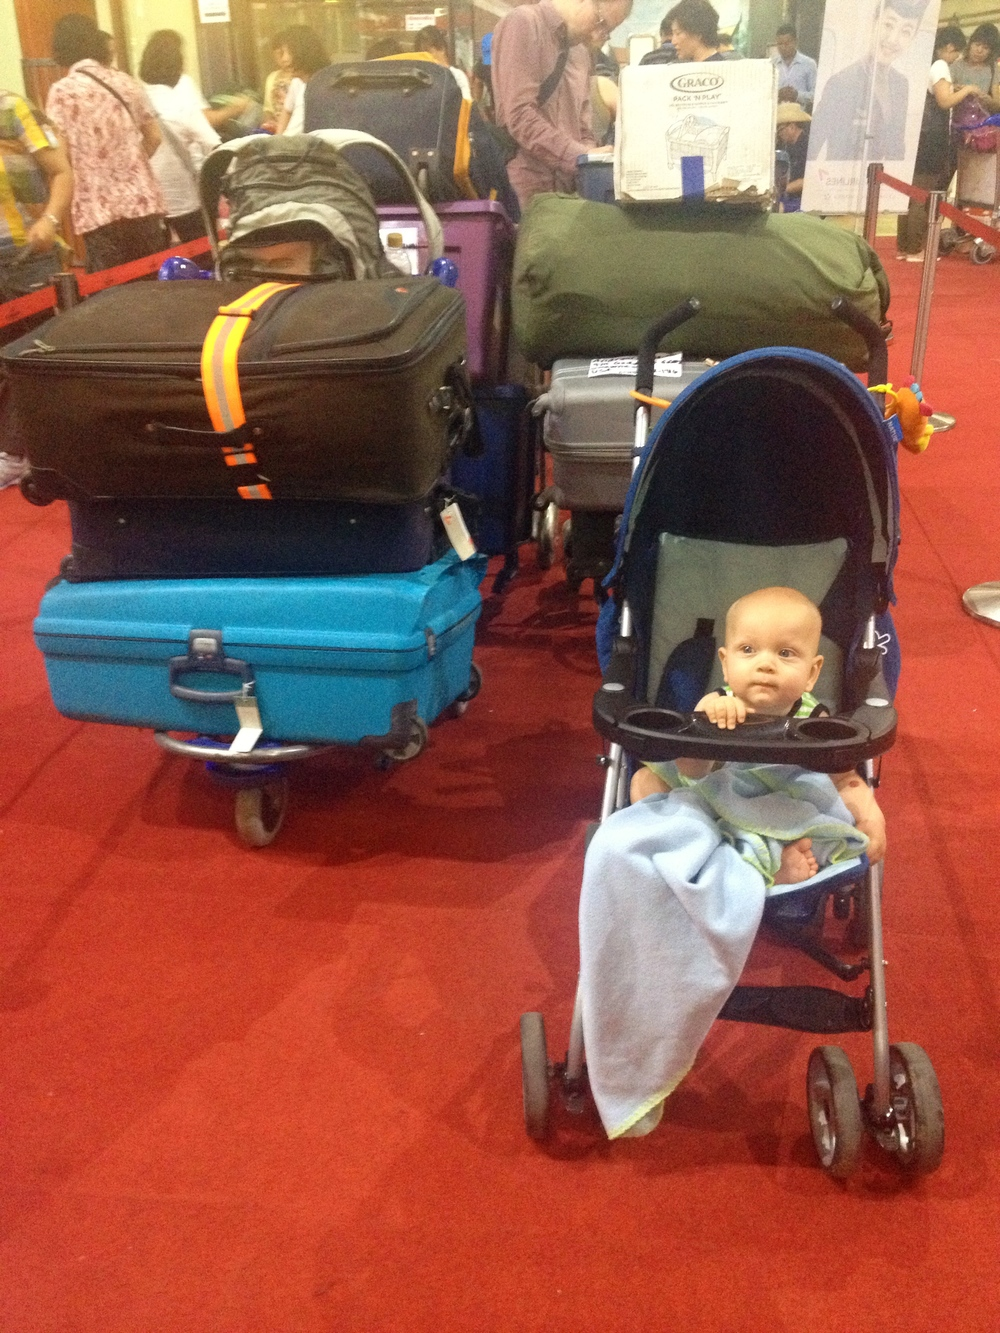 Declan hanging out at the Siem Reap Airport, watching his mother lose her mind.